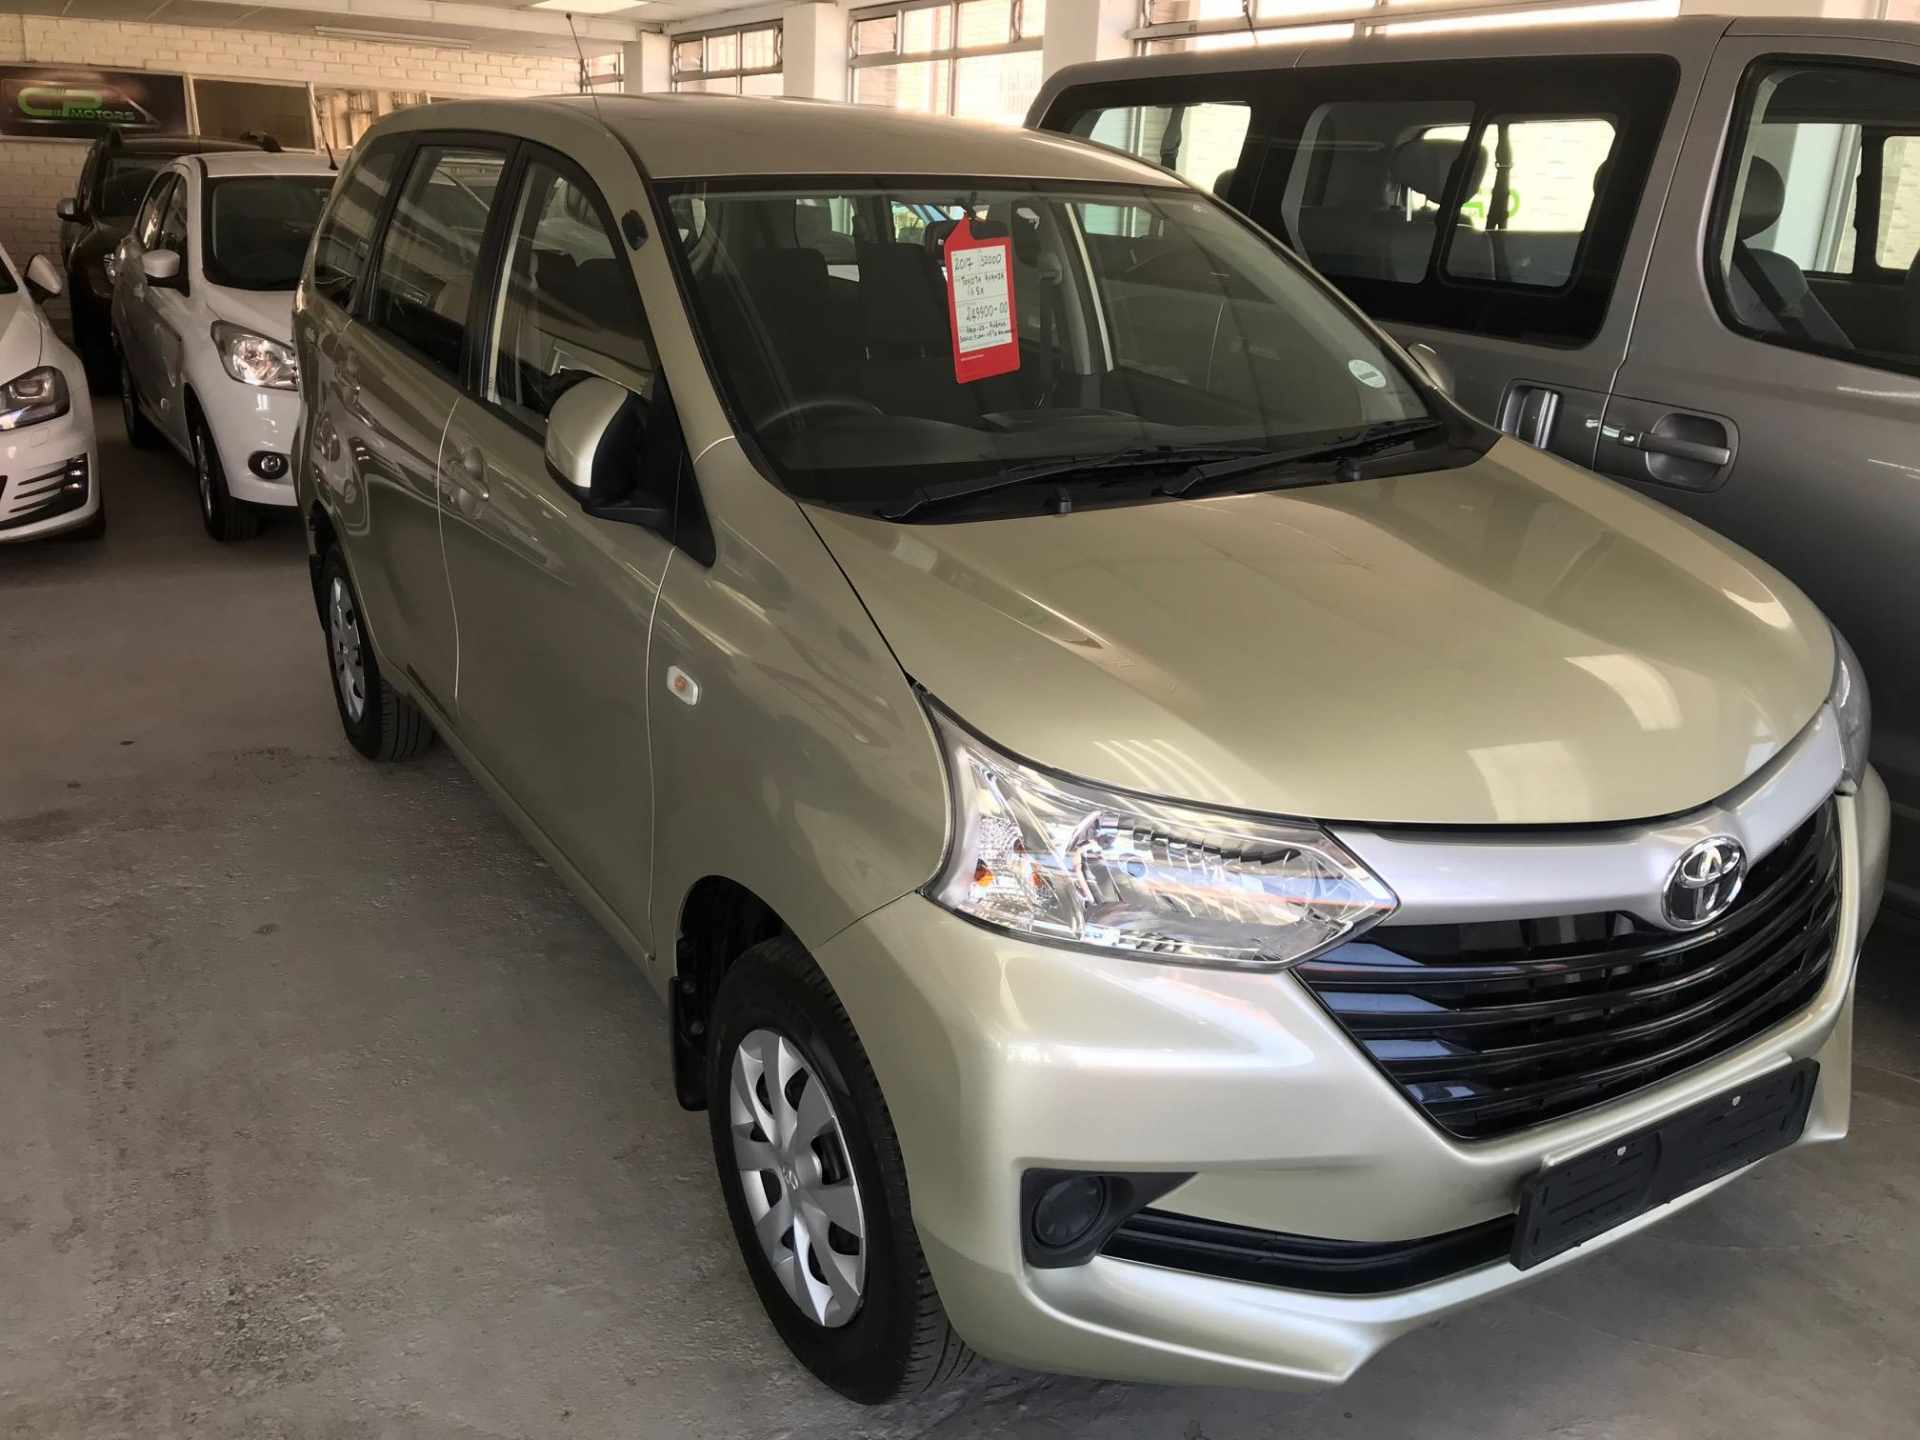 specifications of this toyota avanza